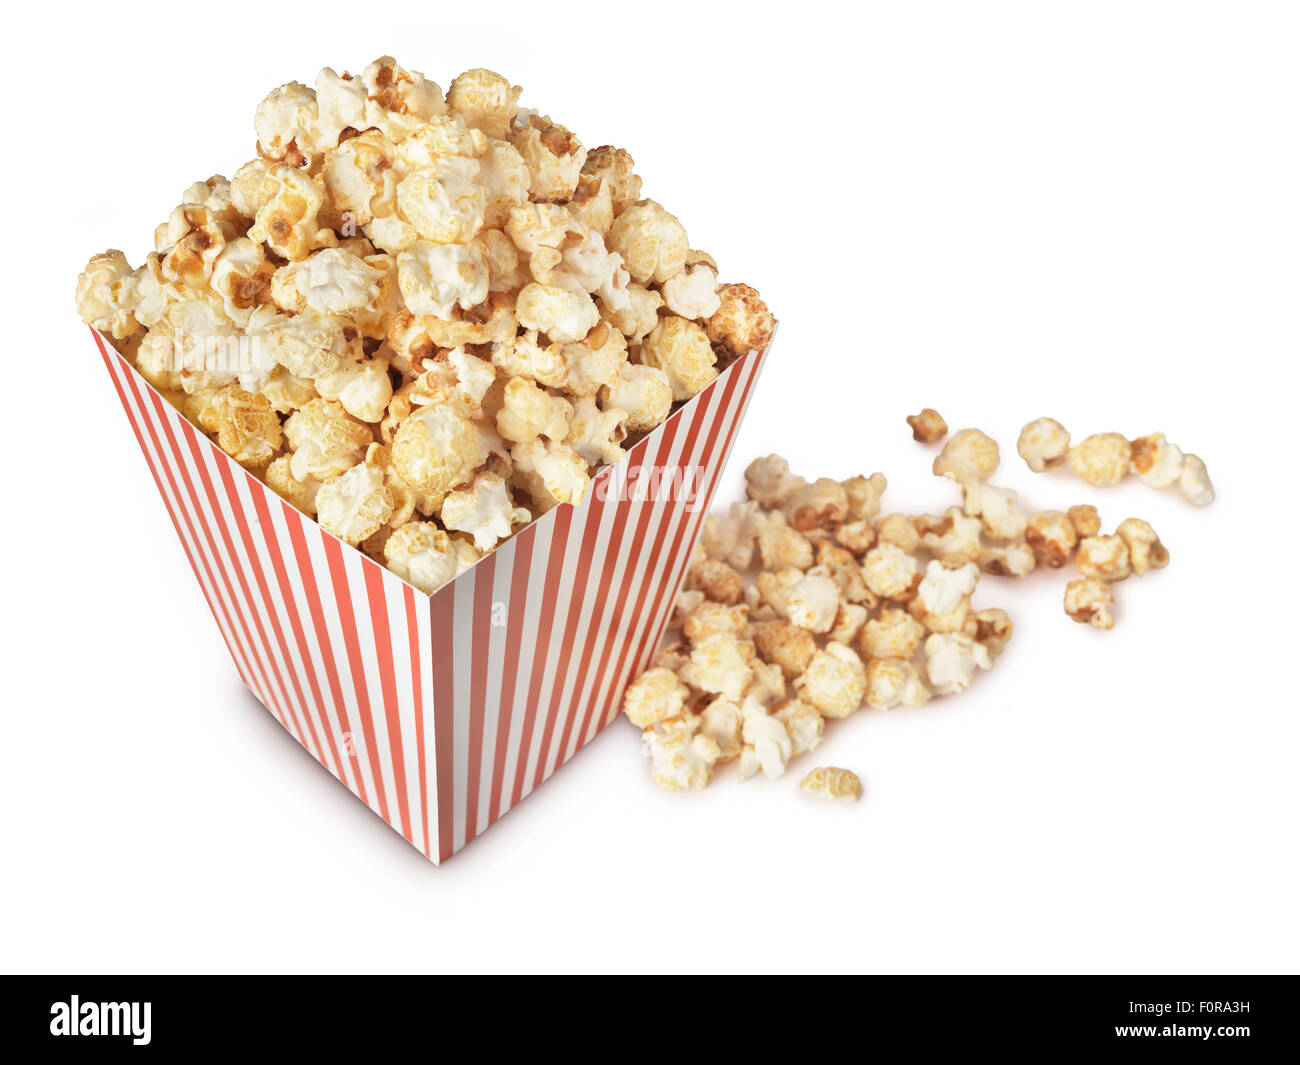 A movie theater popcorn box heaped with the fresh popped, crispy, salty, buttered snack. - Stock Image